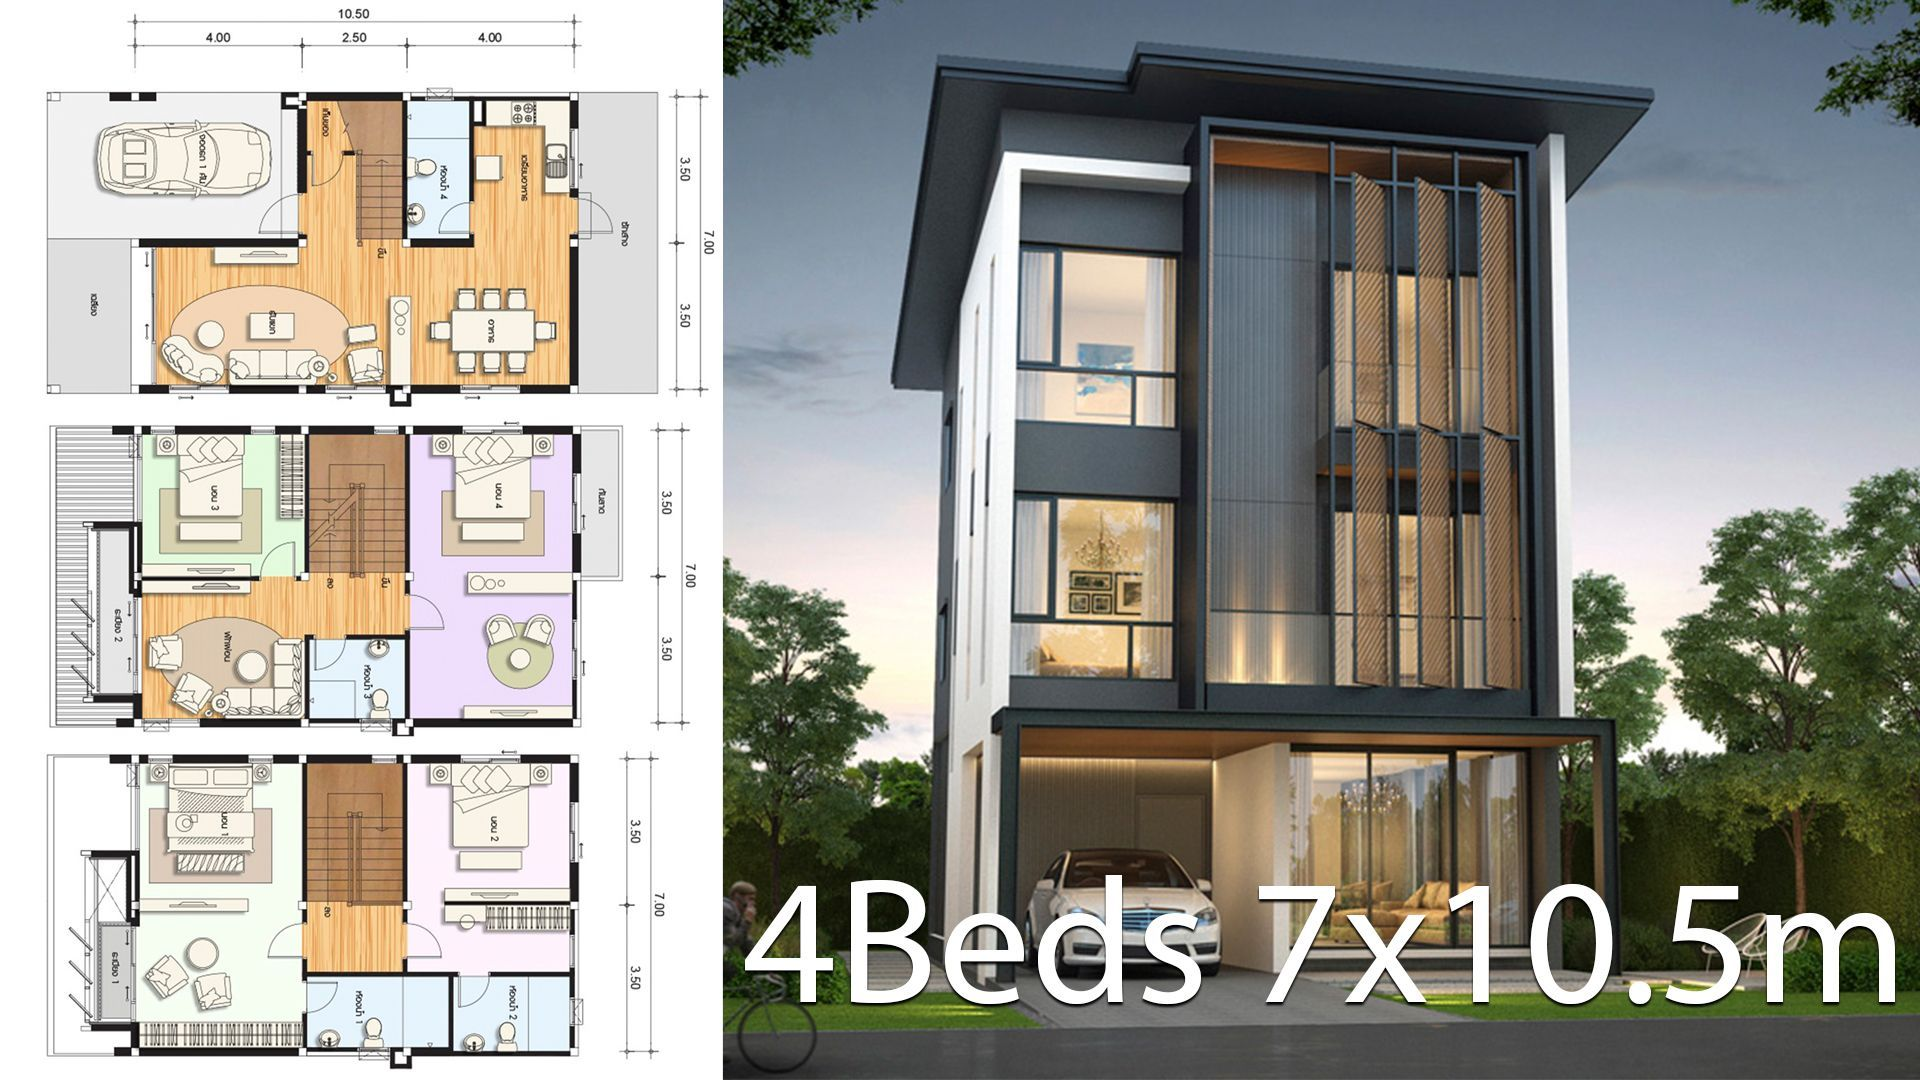 House Design Plan 7x10 5m With 4 Bedrooms Style Modernhouse Description Number 2storeyhoused In 2020 Duplex House Design Home Building Design Home Design Plans